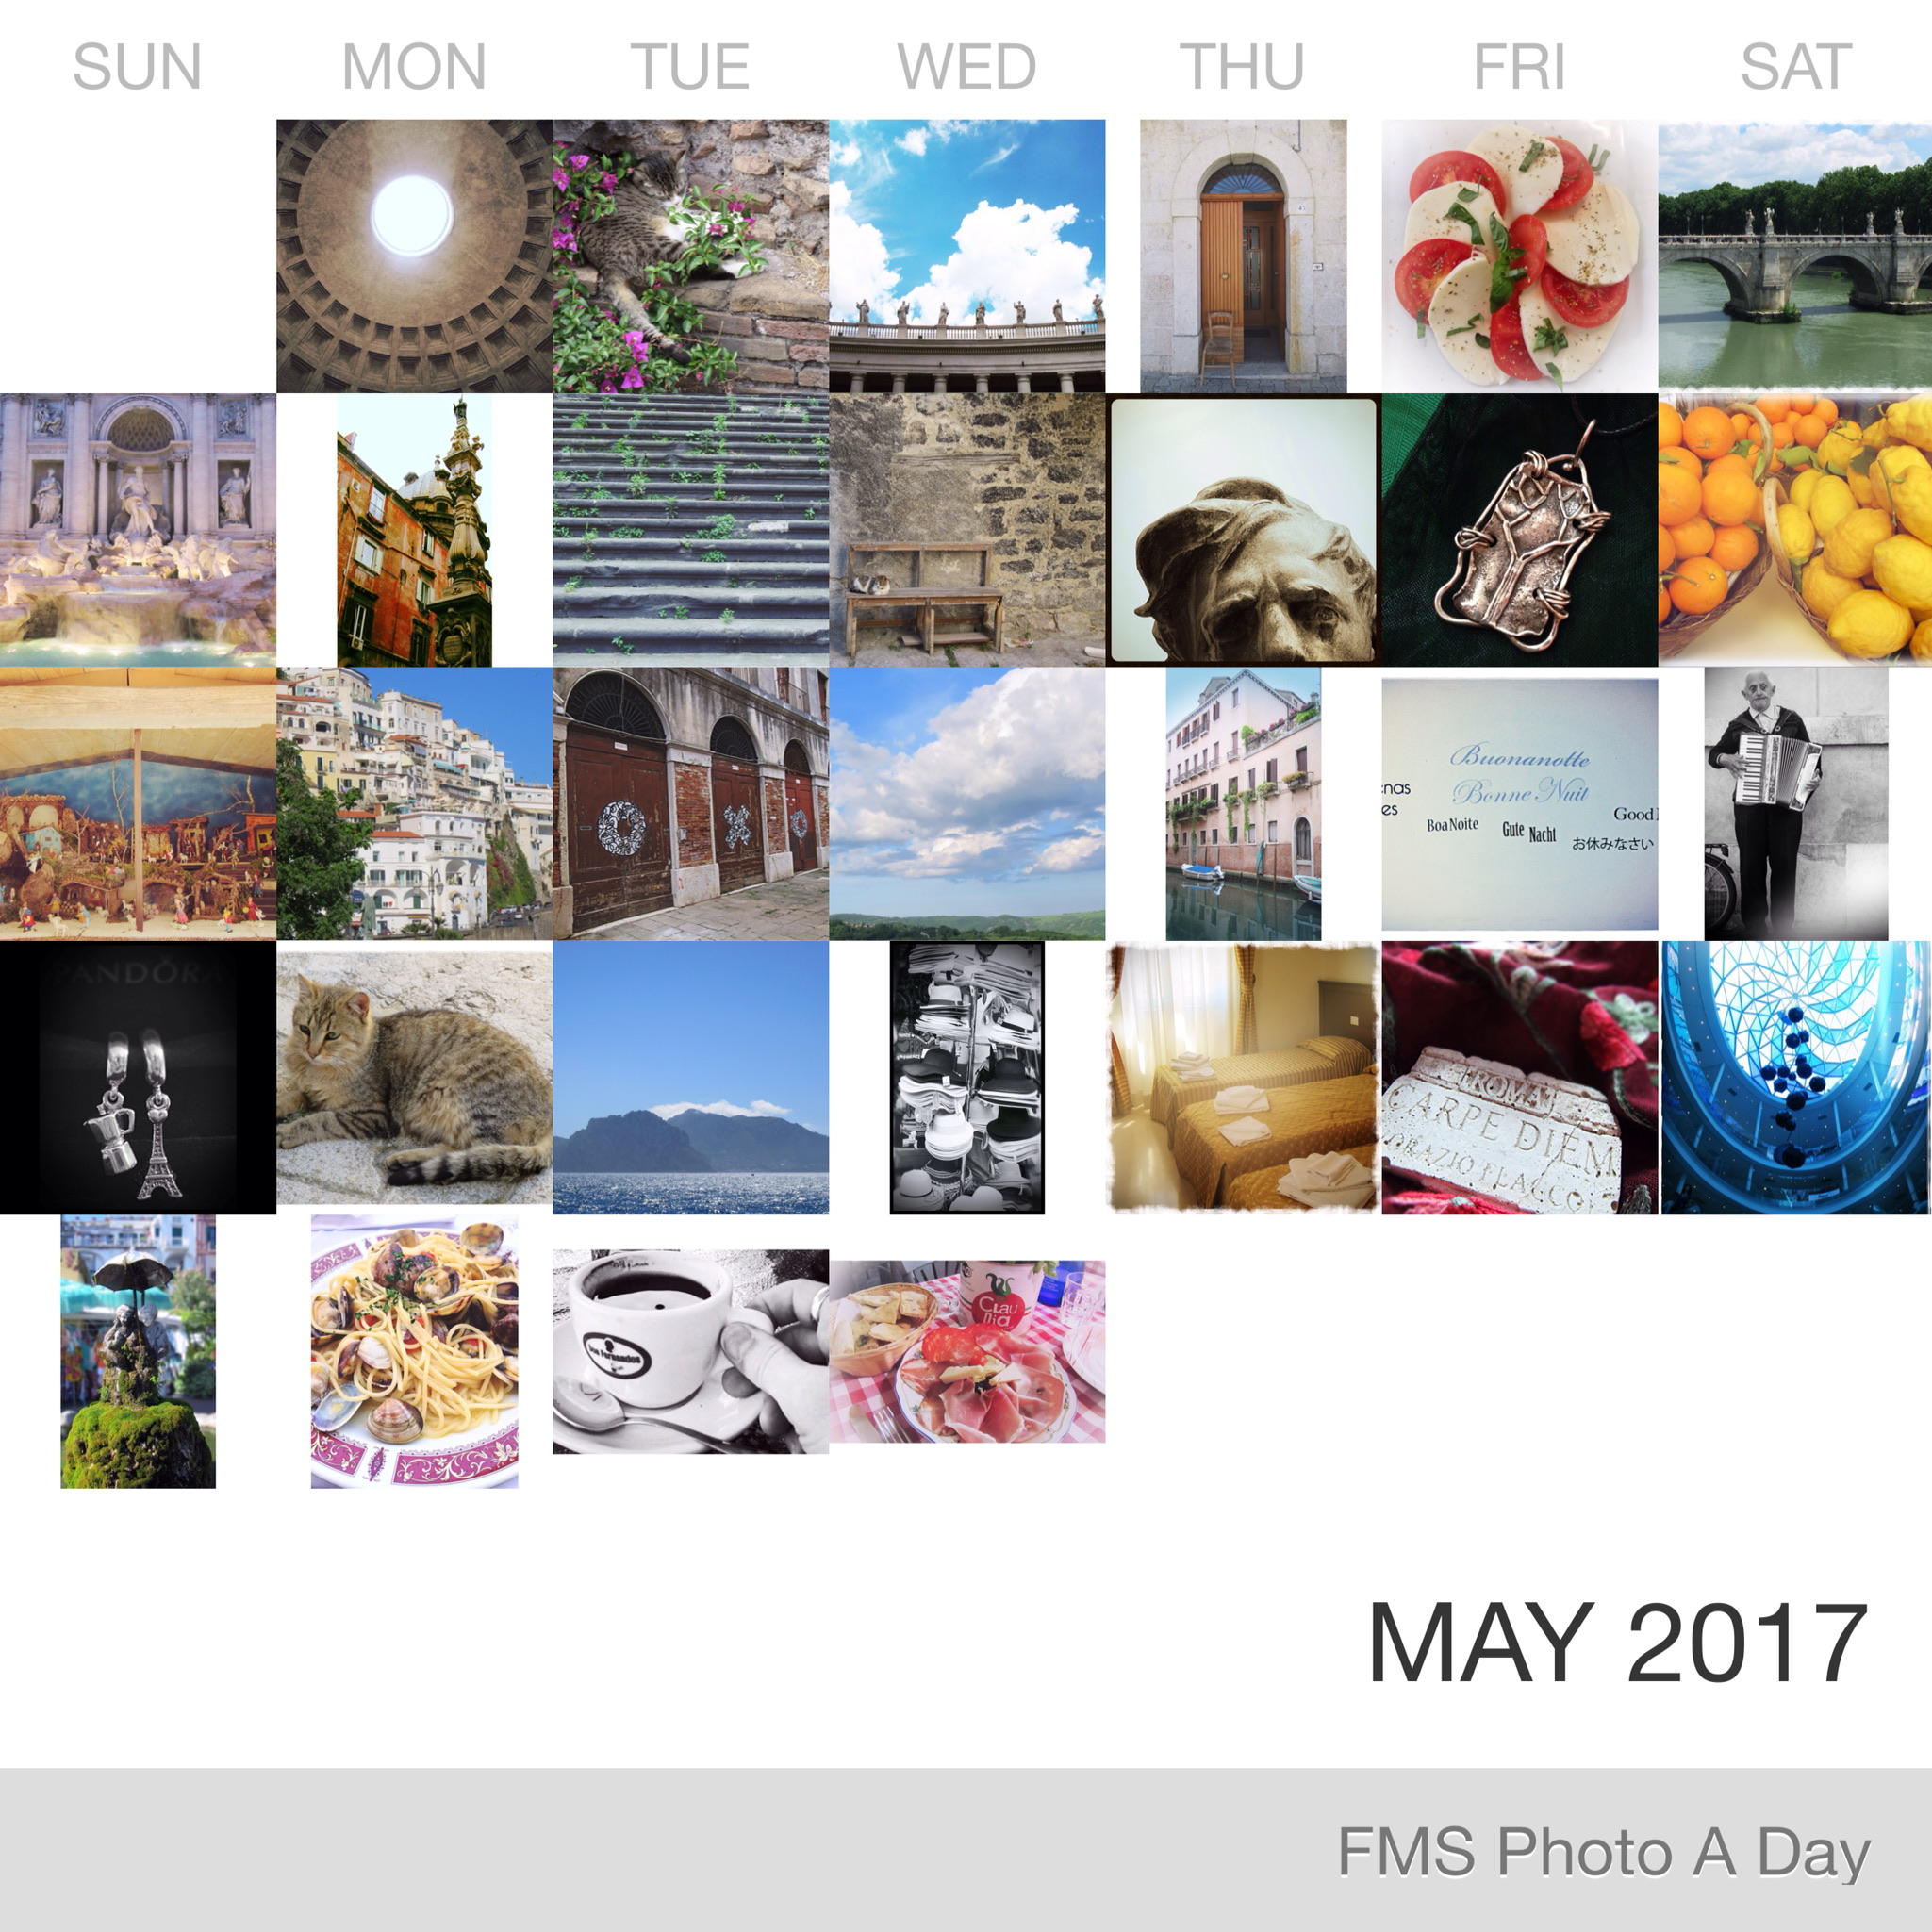 FMS Photo A Day May 2017